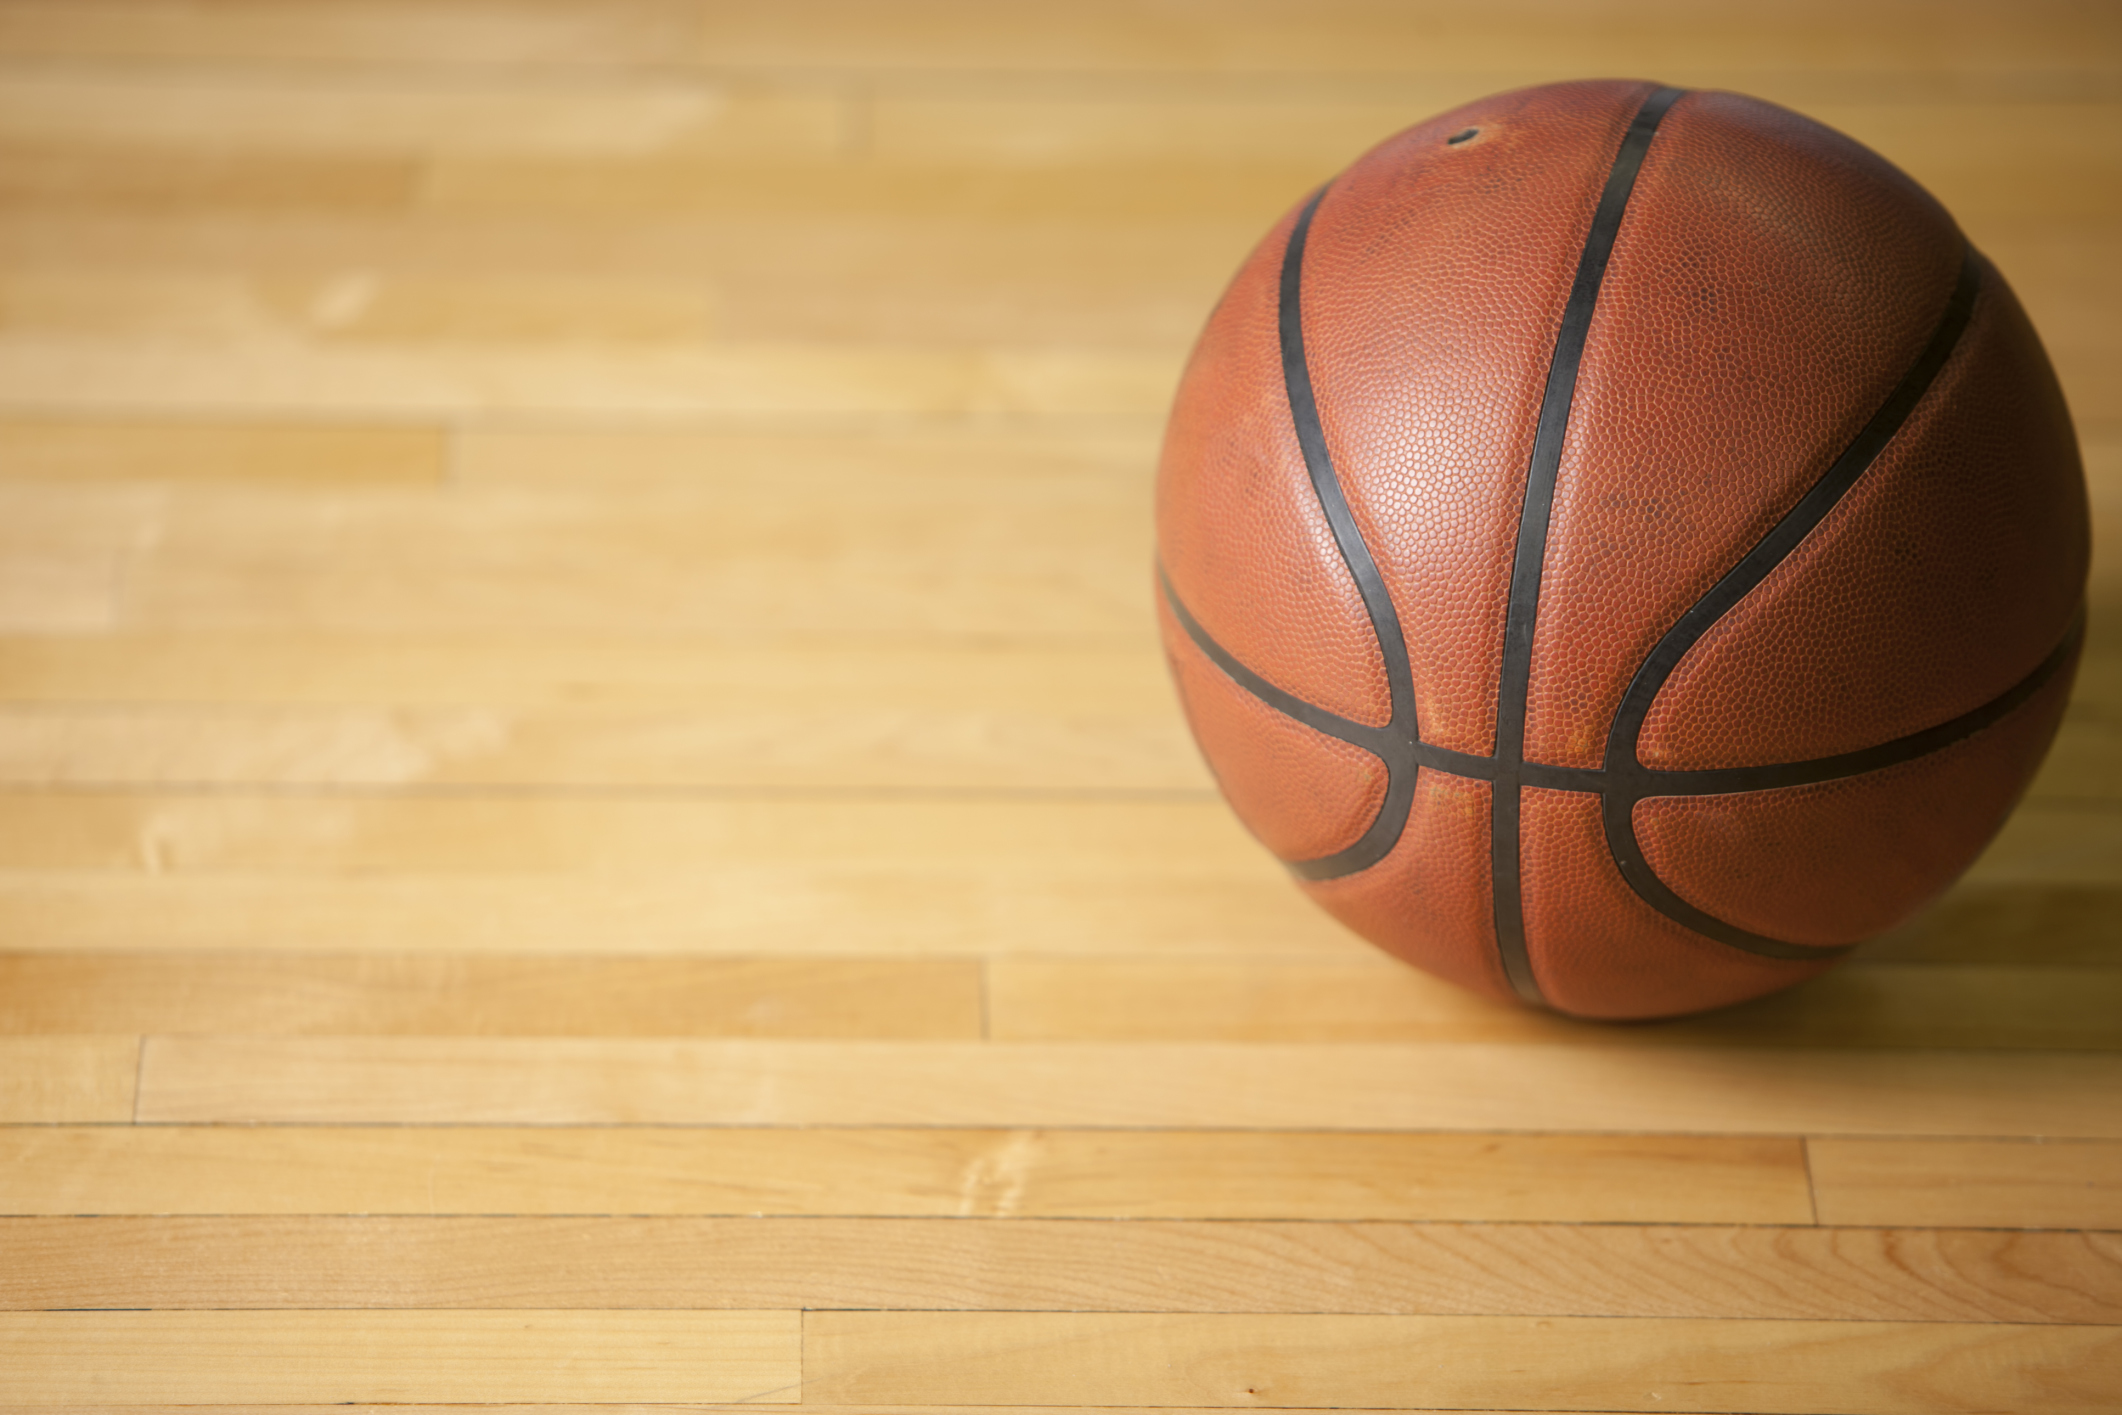 Drillmasters NYC preps kids for college on the basketballcourt